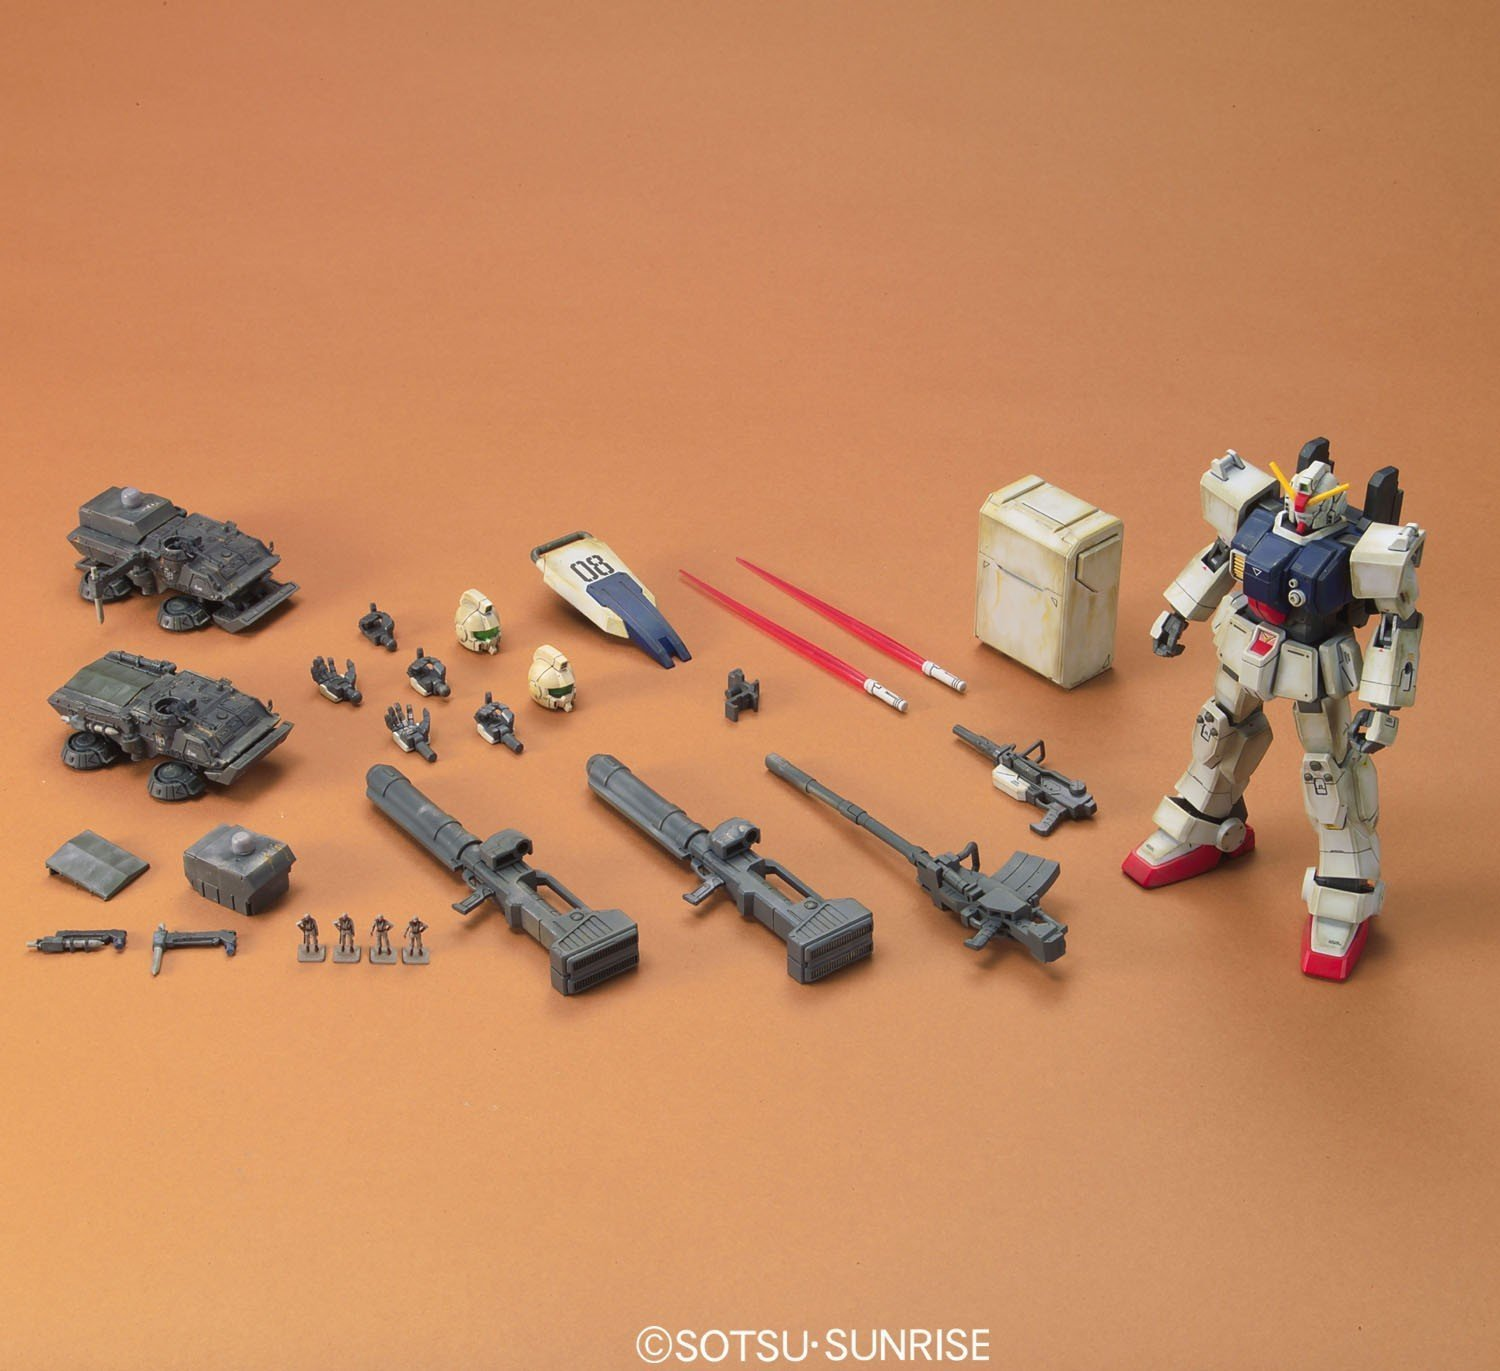 HGUC 1/144 RX-79(G) Gundam The Ground War Set - Model kit image